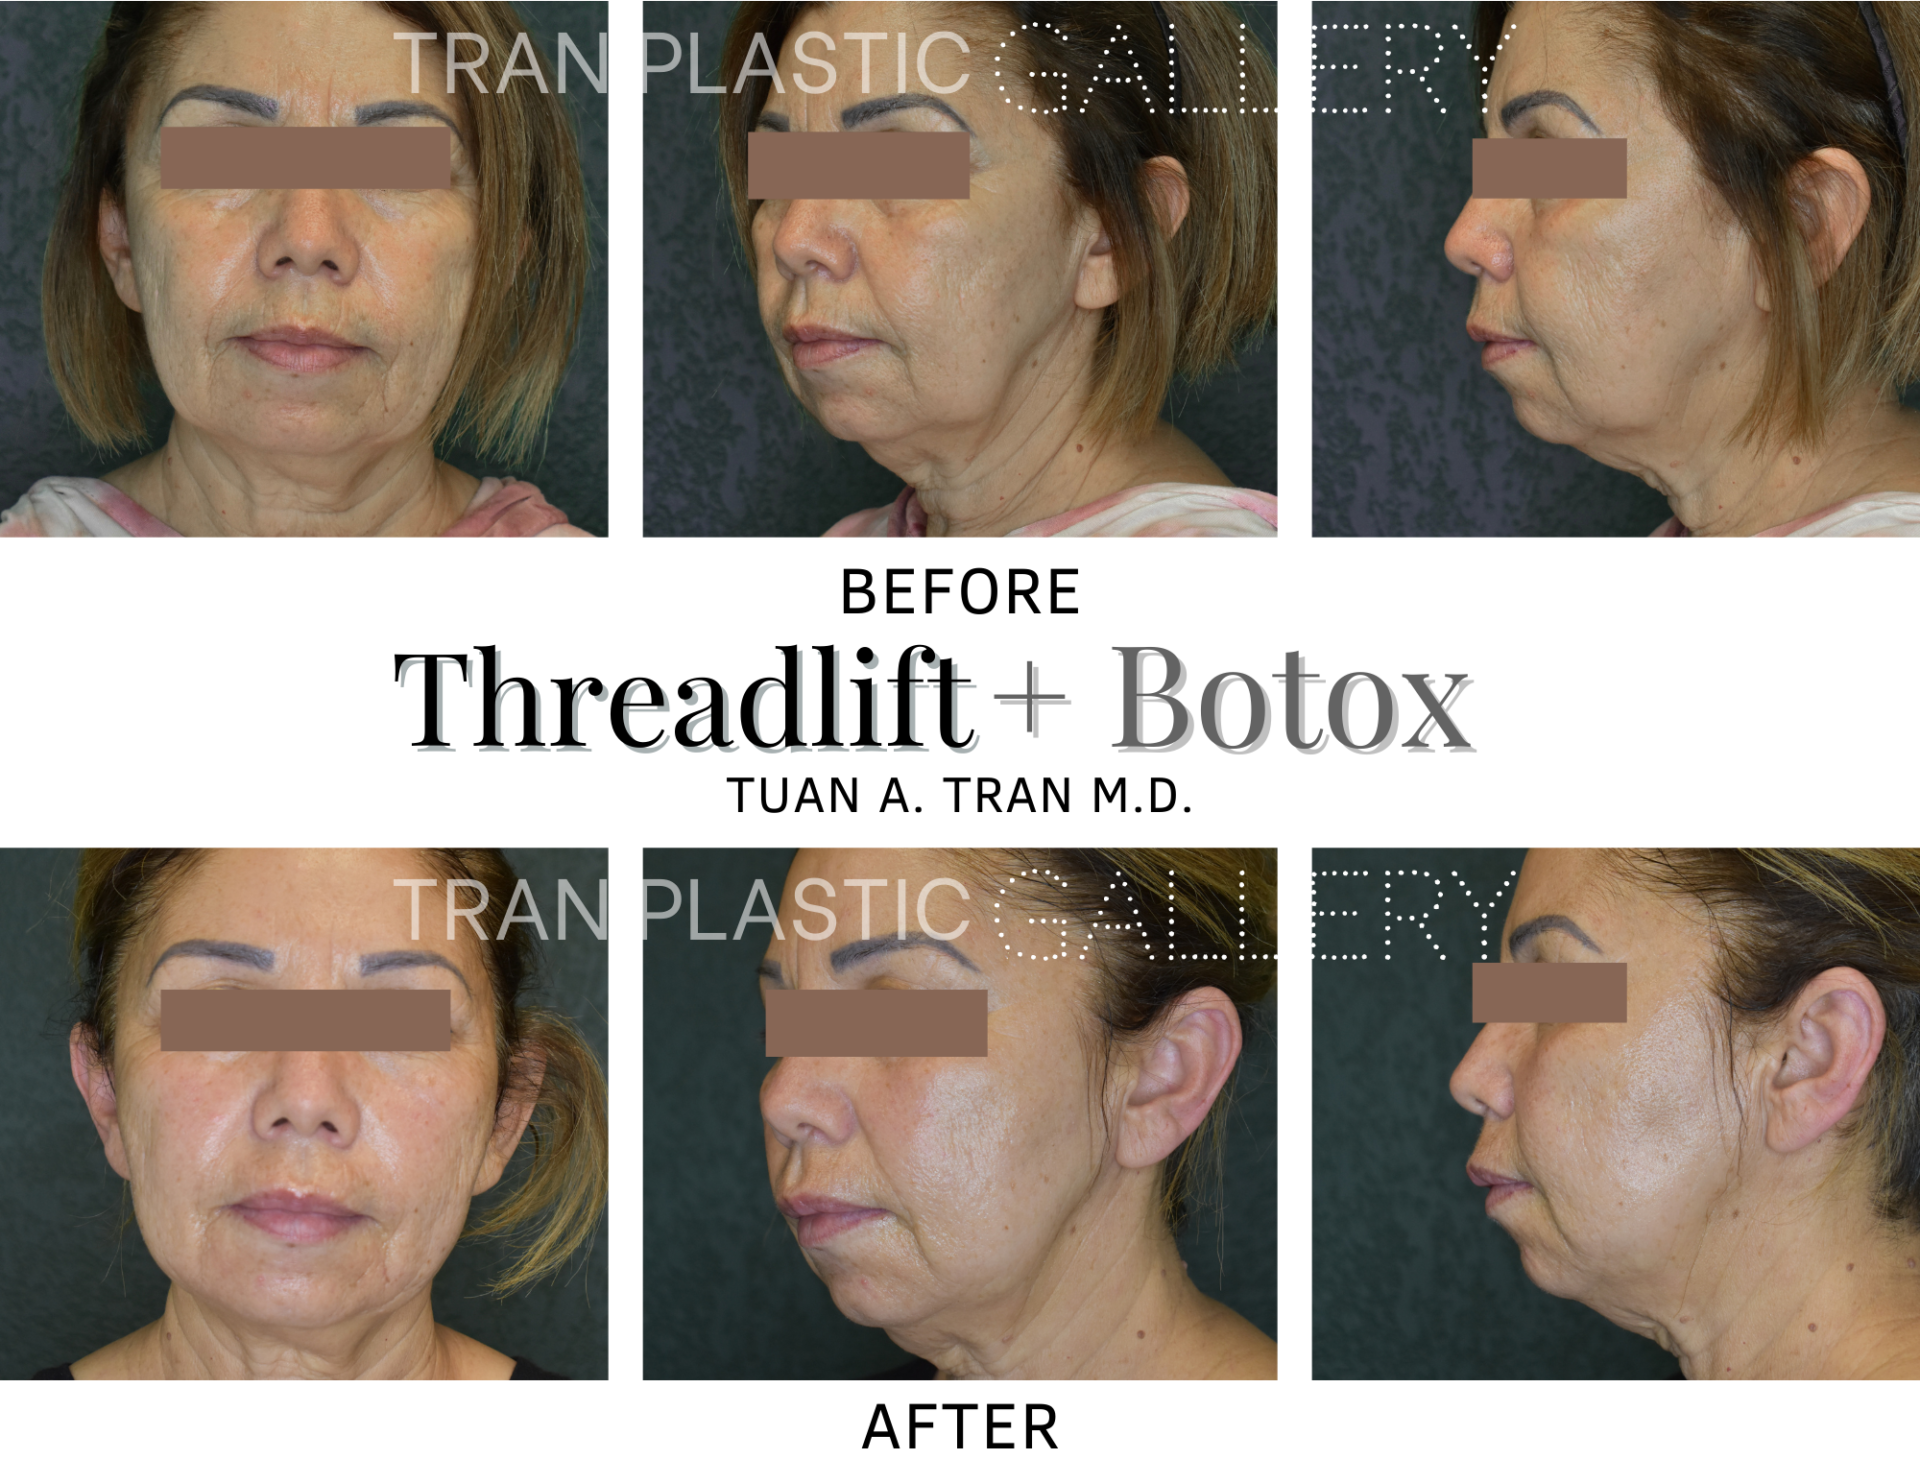 Tran Plastic Surgery - Threadlift Botox